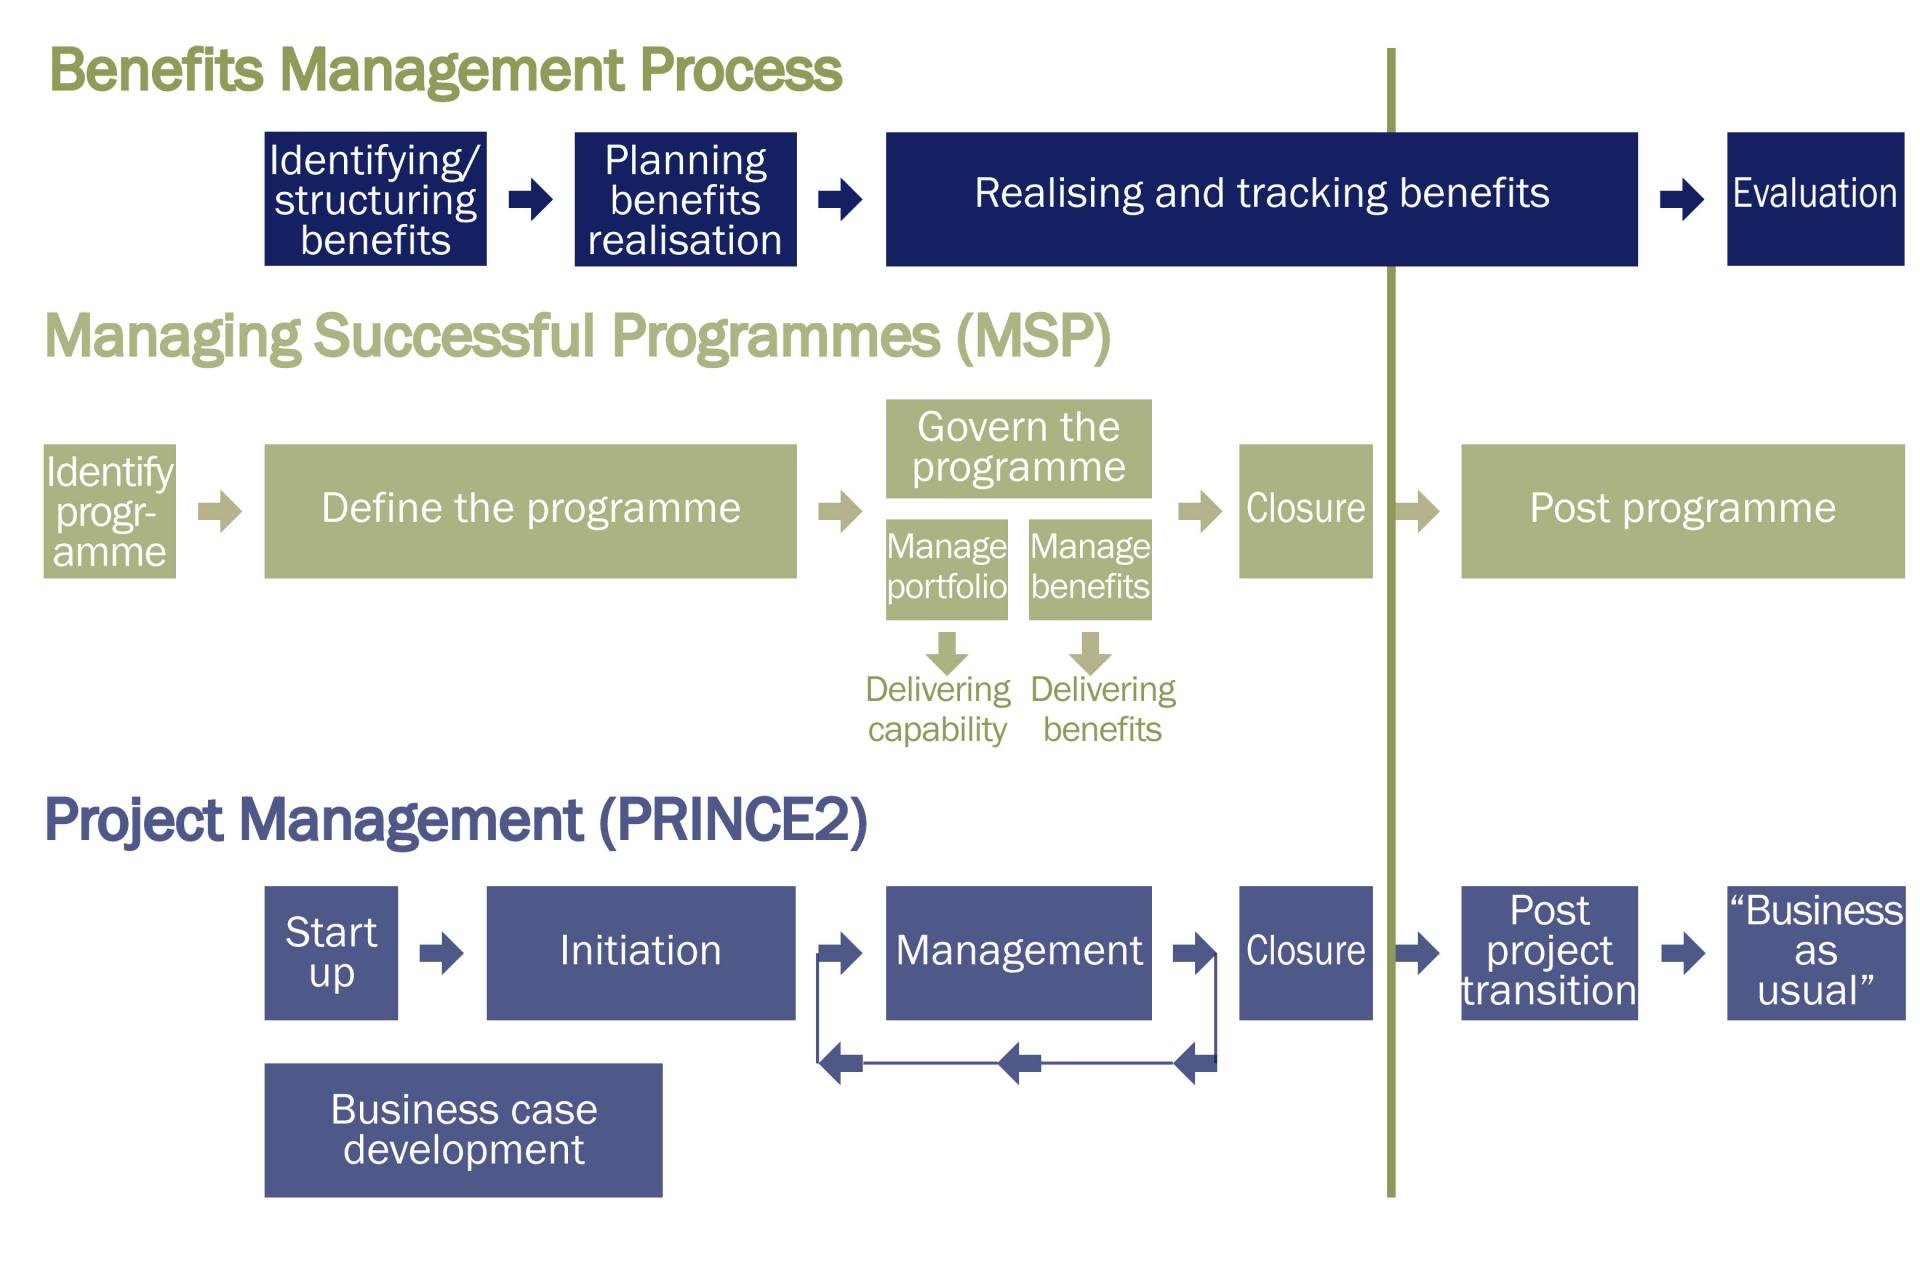 programme and project benefits management questions and answers benefits management diagram comparing prince2 and managing successful programmes